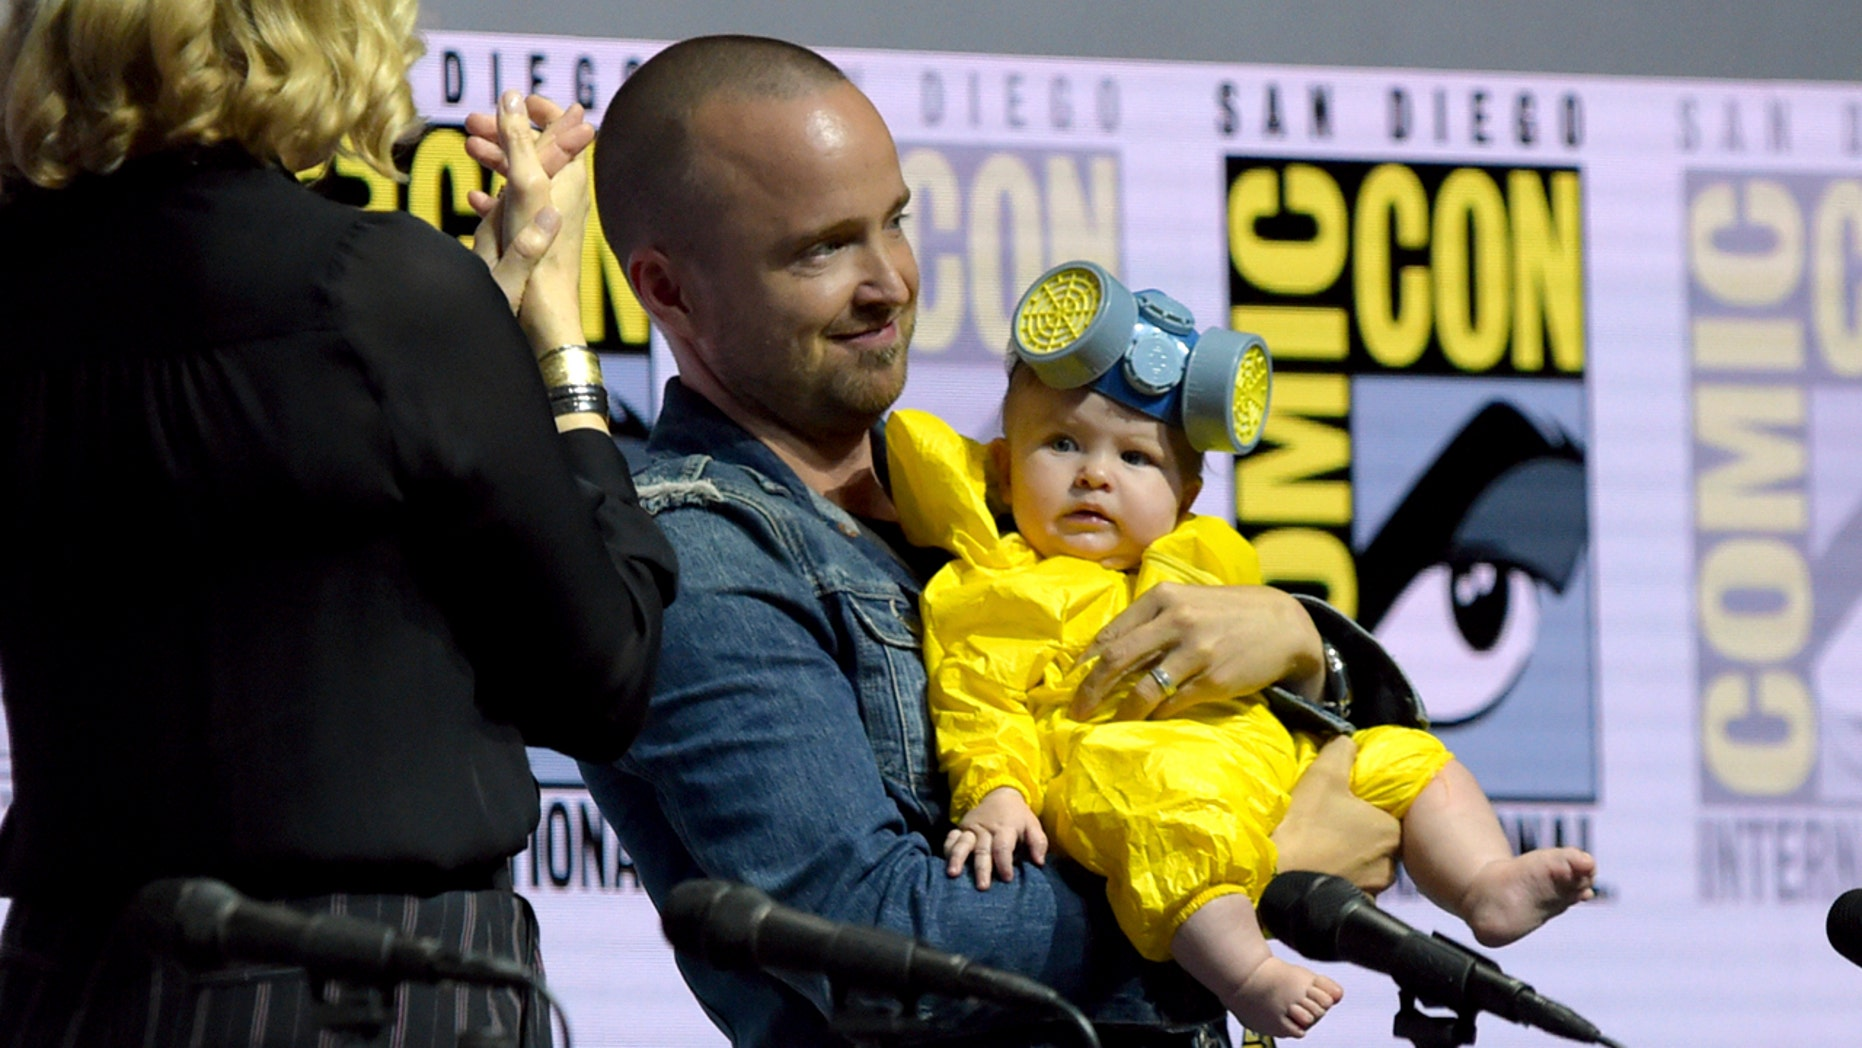 """Anna Gunn, from left, looks on as Aaron Paul holds his daughter Story Annabelle, dressed as his character Jesse Pinkman, at the """"Breaking Bad"""" 10th Anniversary panel on day one of Comic-Con International on Thursday, July 19, 2018, in San Diego.(Photo by Richard Shotwell/Invision/AP)"""